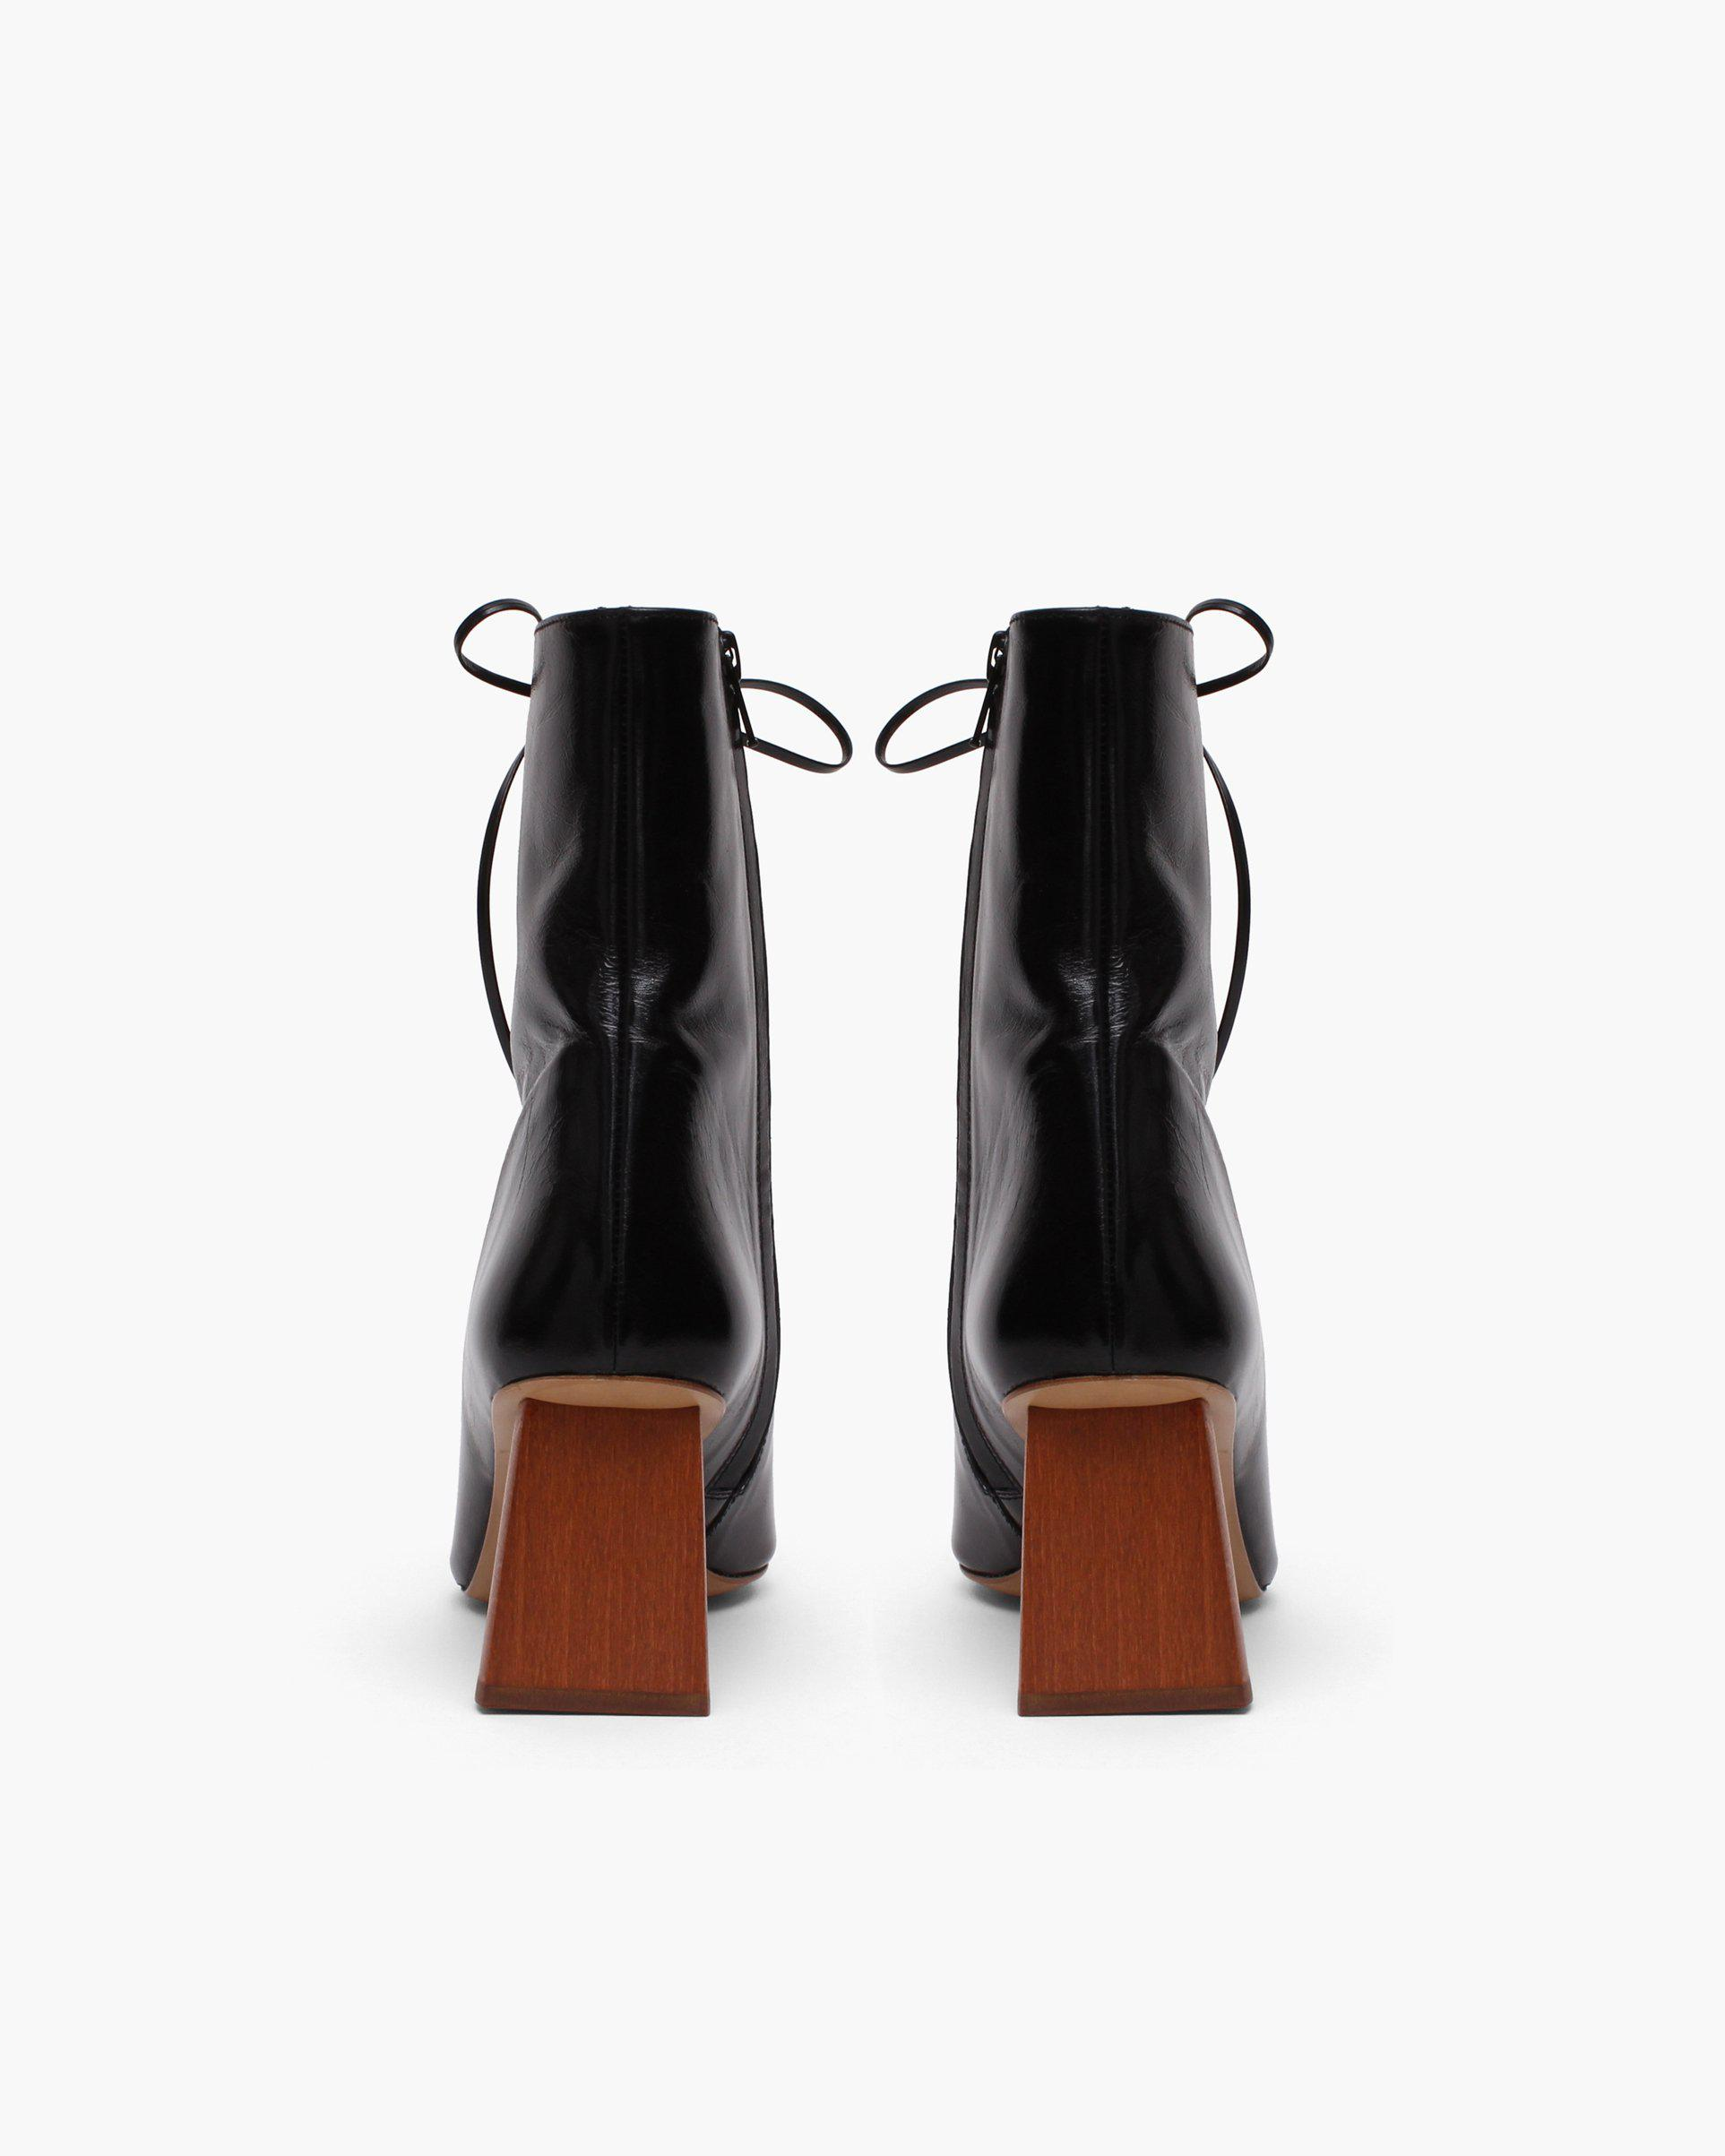 Peyton Boots Leather Patent Crinkle Black - SALE 2